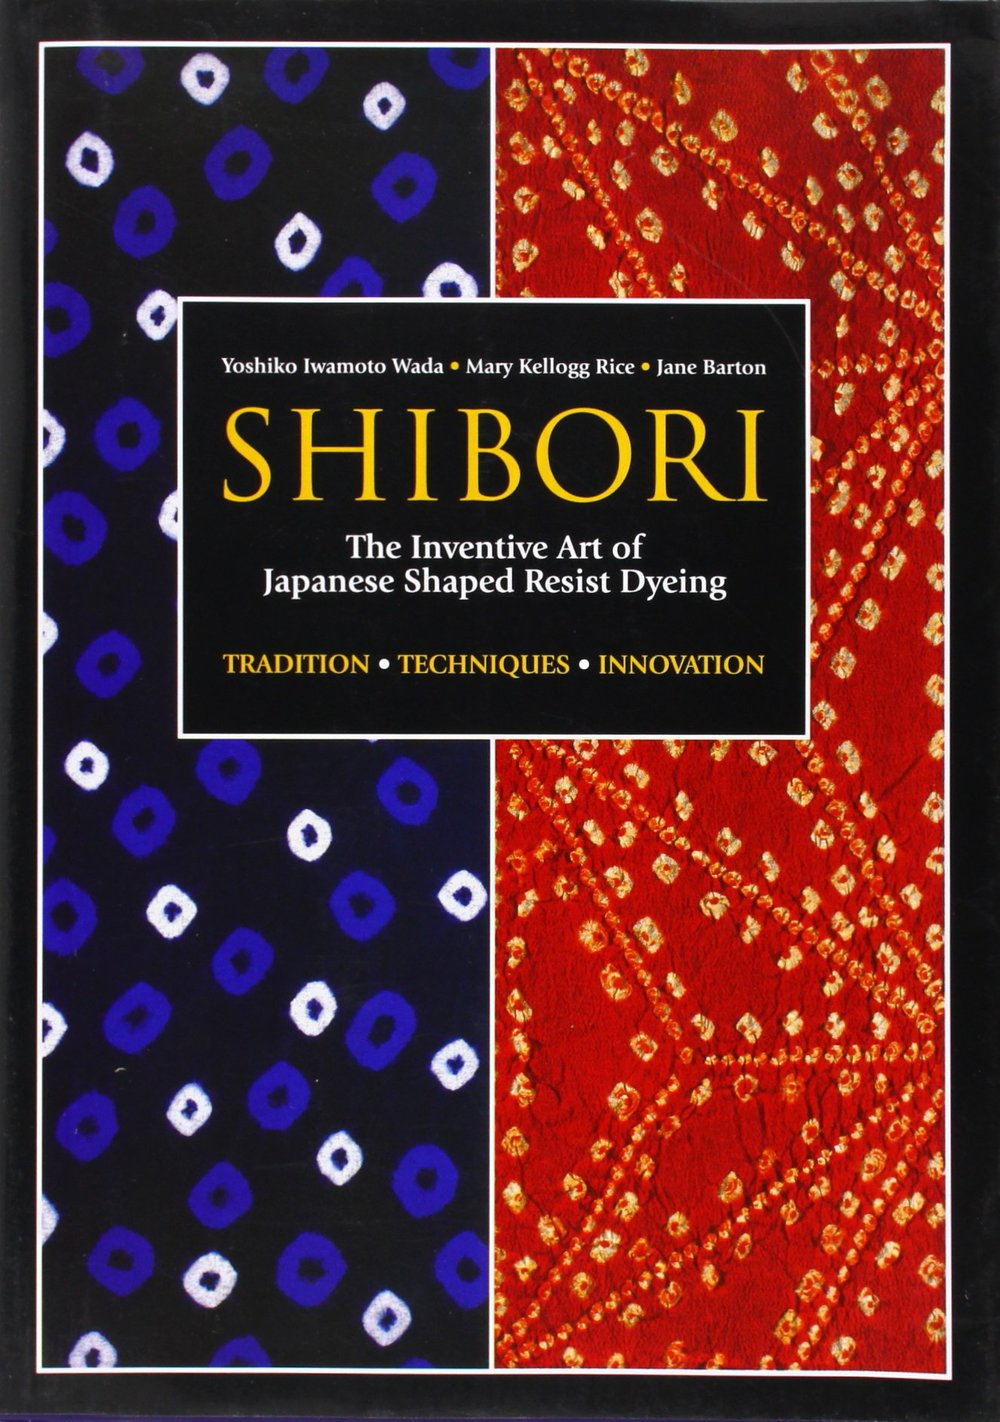 A truly extensive and exhaustive resource on shibori resist techniques. It covers history and how-to, with lots of pictures (mostly in black and white, but still helpful). This is a recent addition to my library, but an important one nonetheless. Great source for dyers (or those who want to start!). This is one of those books you'll permanently keep in your studio. If you are even remotely interested in shibori, you need this book. Includes recipes for indigo vats in the back.